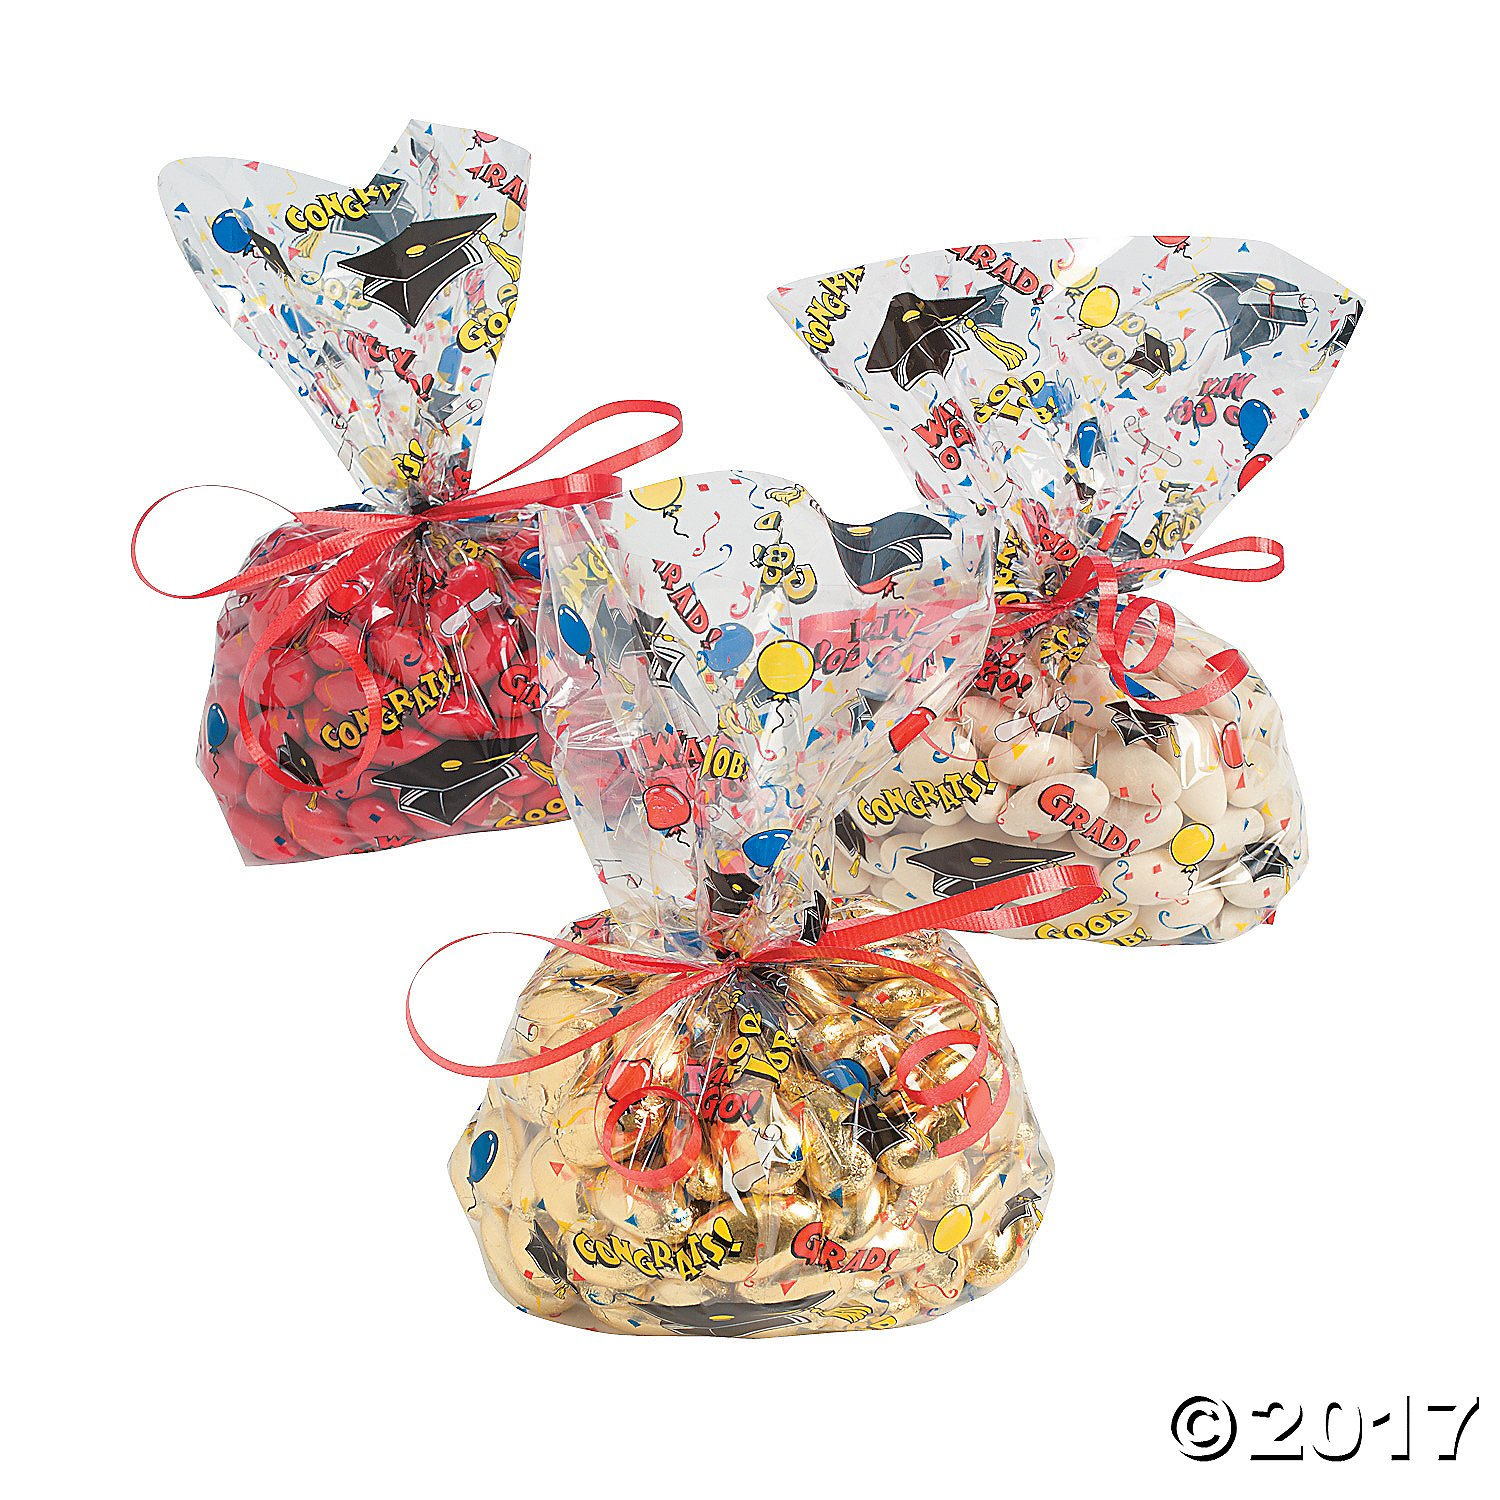 Cellophane Graduation Party Goody Bags - 12 ct